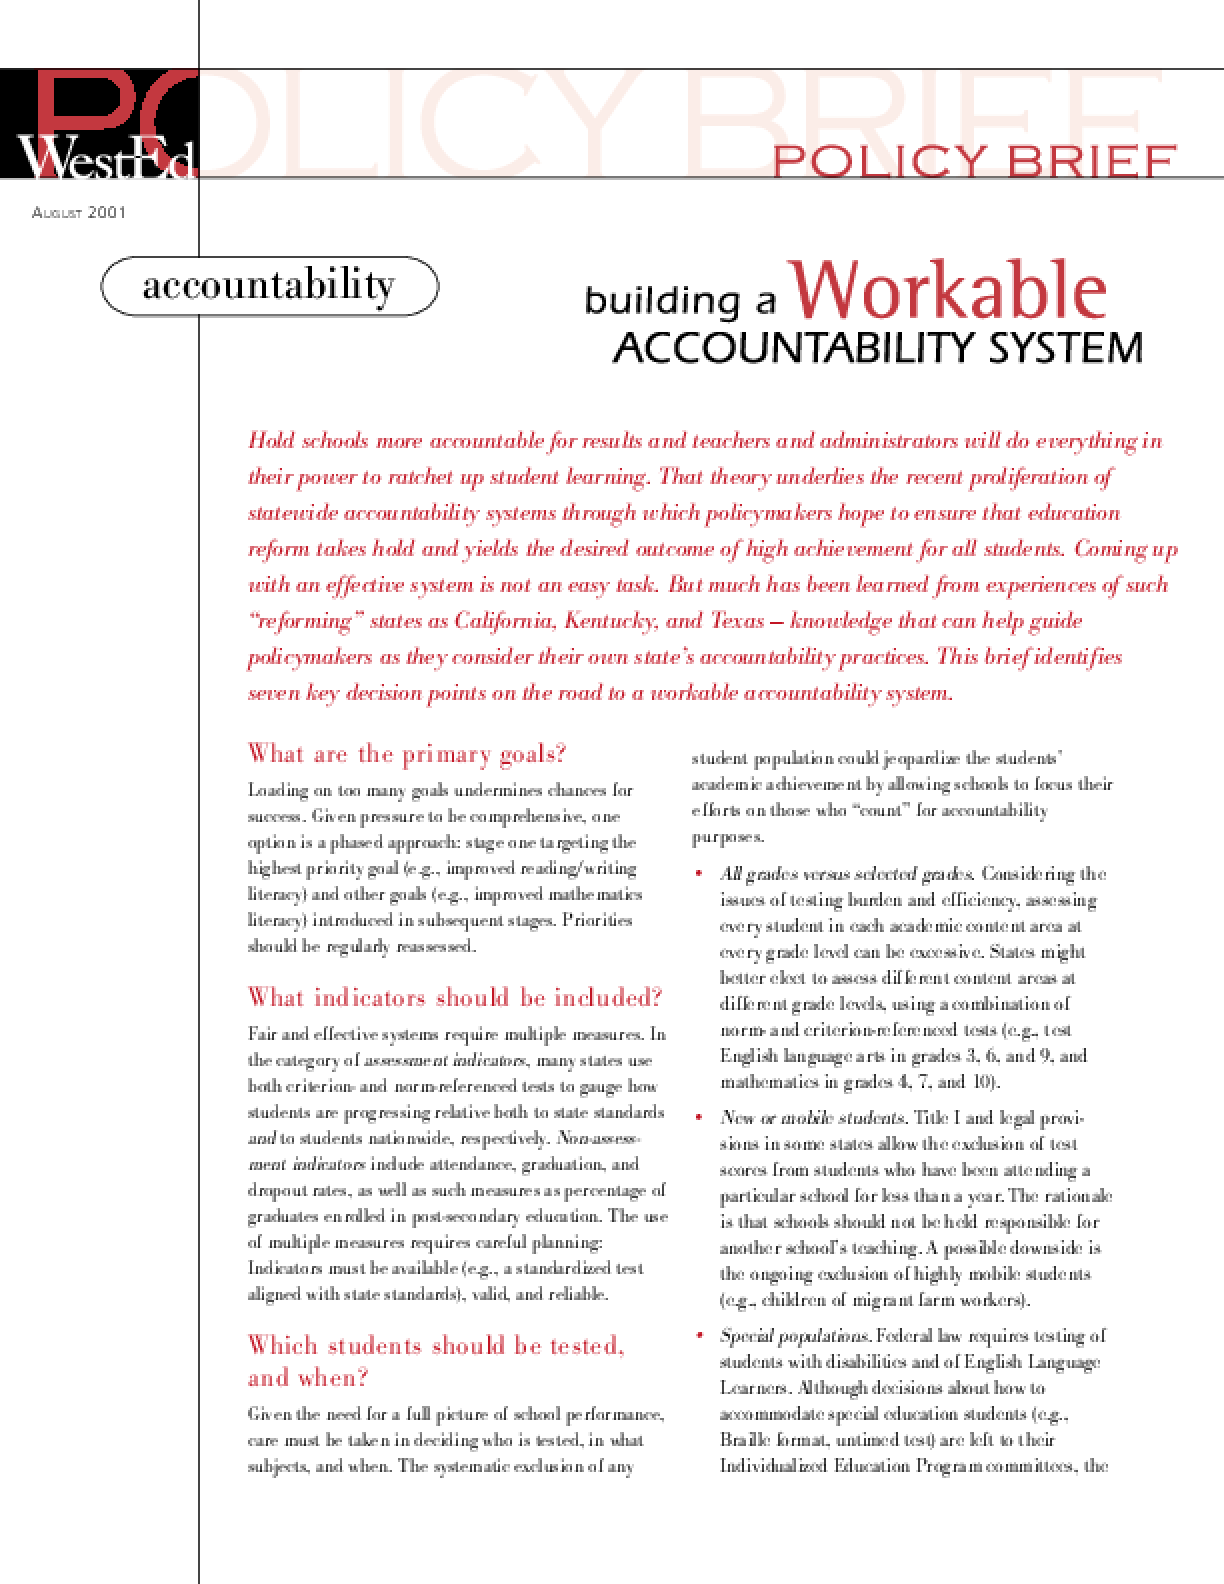 Building a Workable Accountability System: Policy Brief